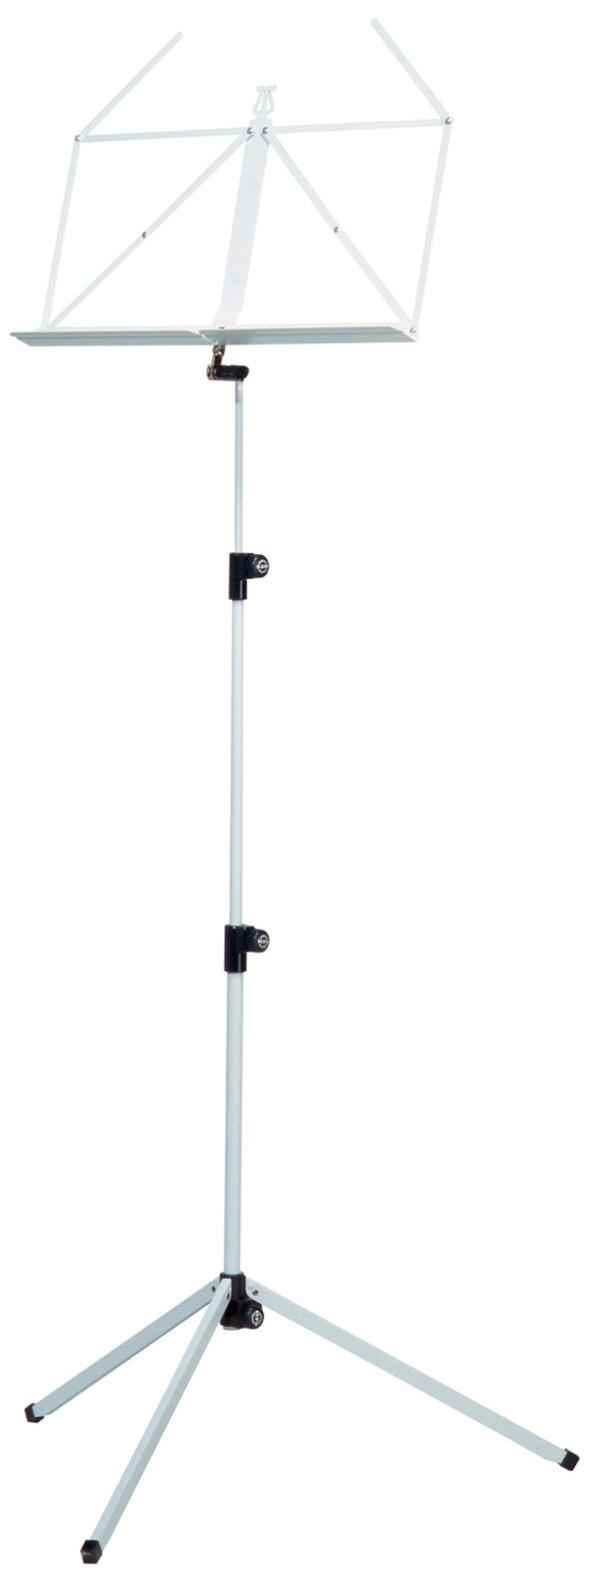 Konig & Meyer 100/1 Folding Music Stand - WHITE